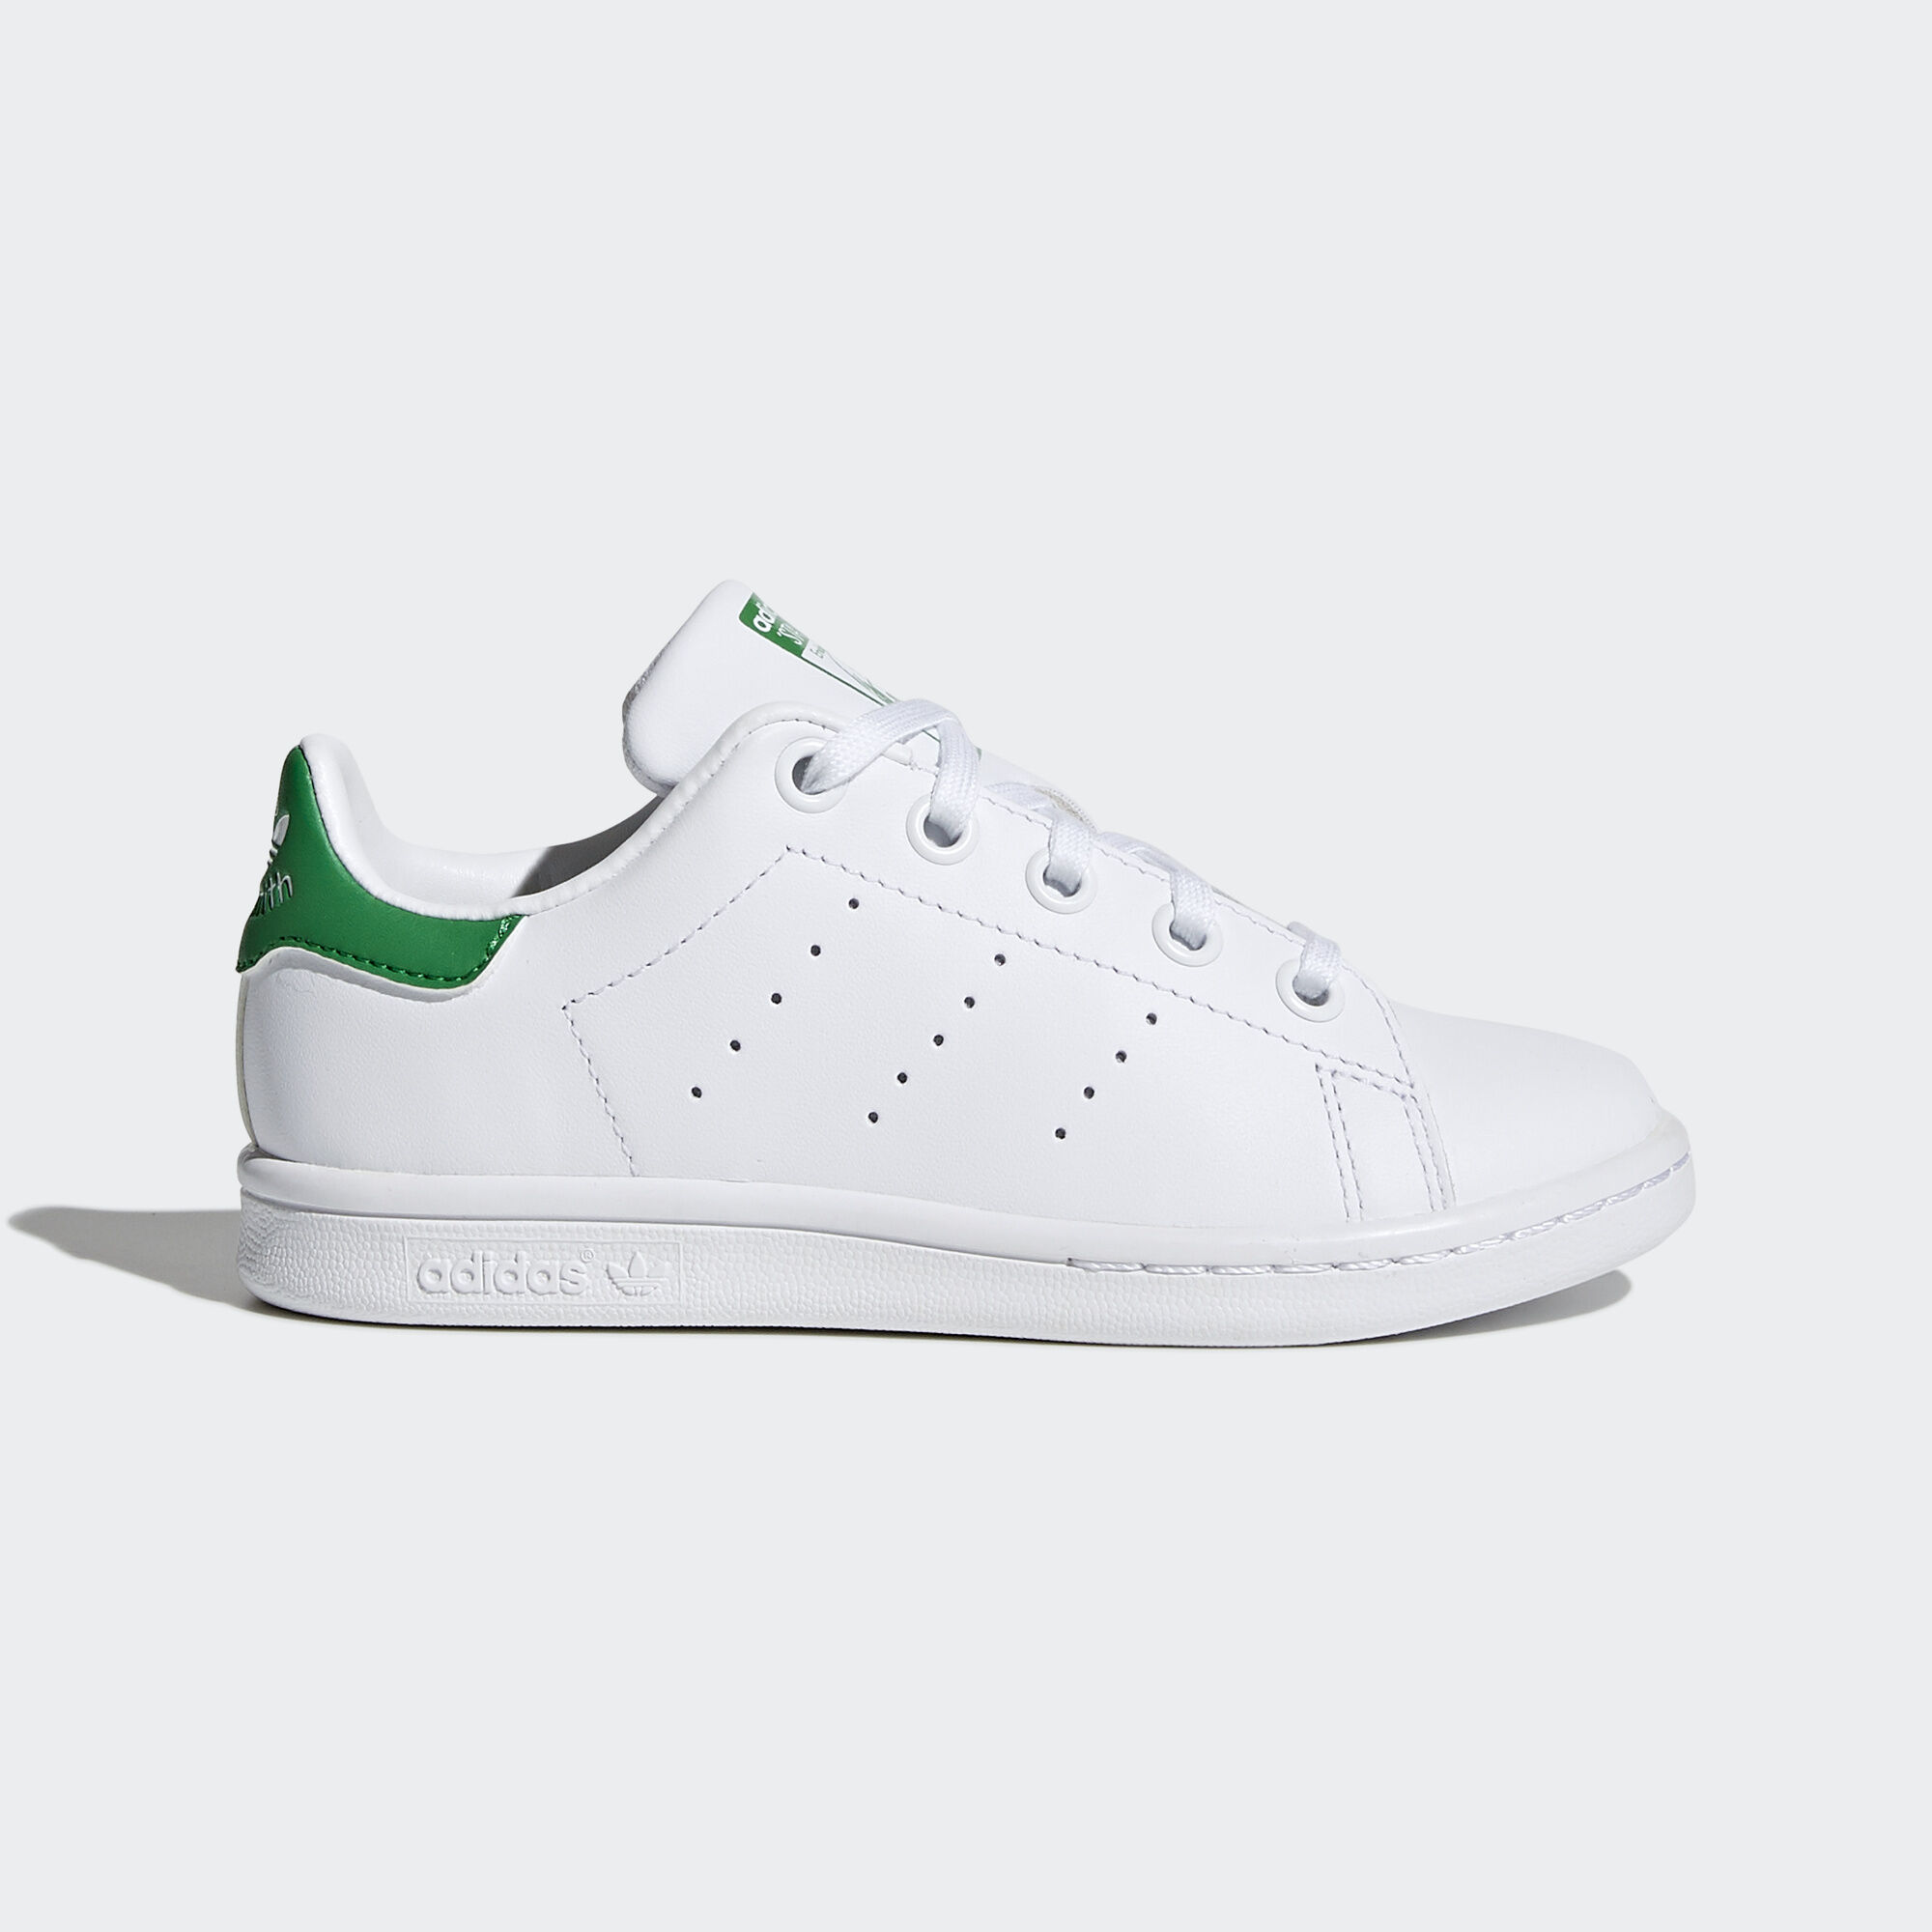 Image result for stan smith